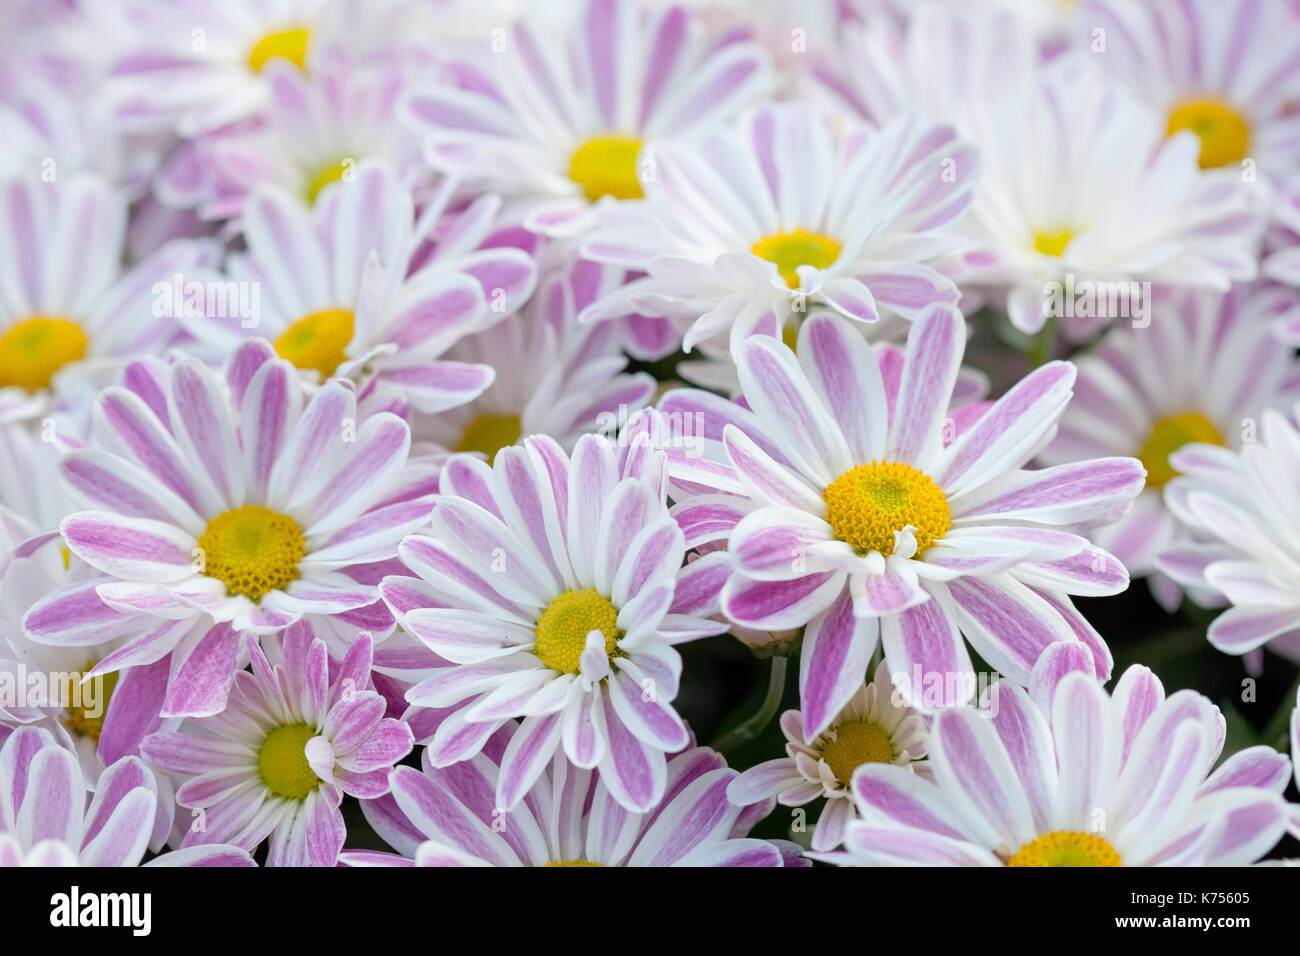 Violet chrysanthemums floral background. Colorful white pink yellow mums flowers close-up photo. Selective focus - Stock Image